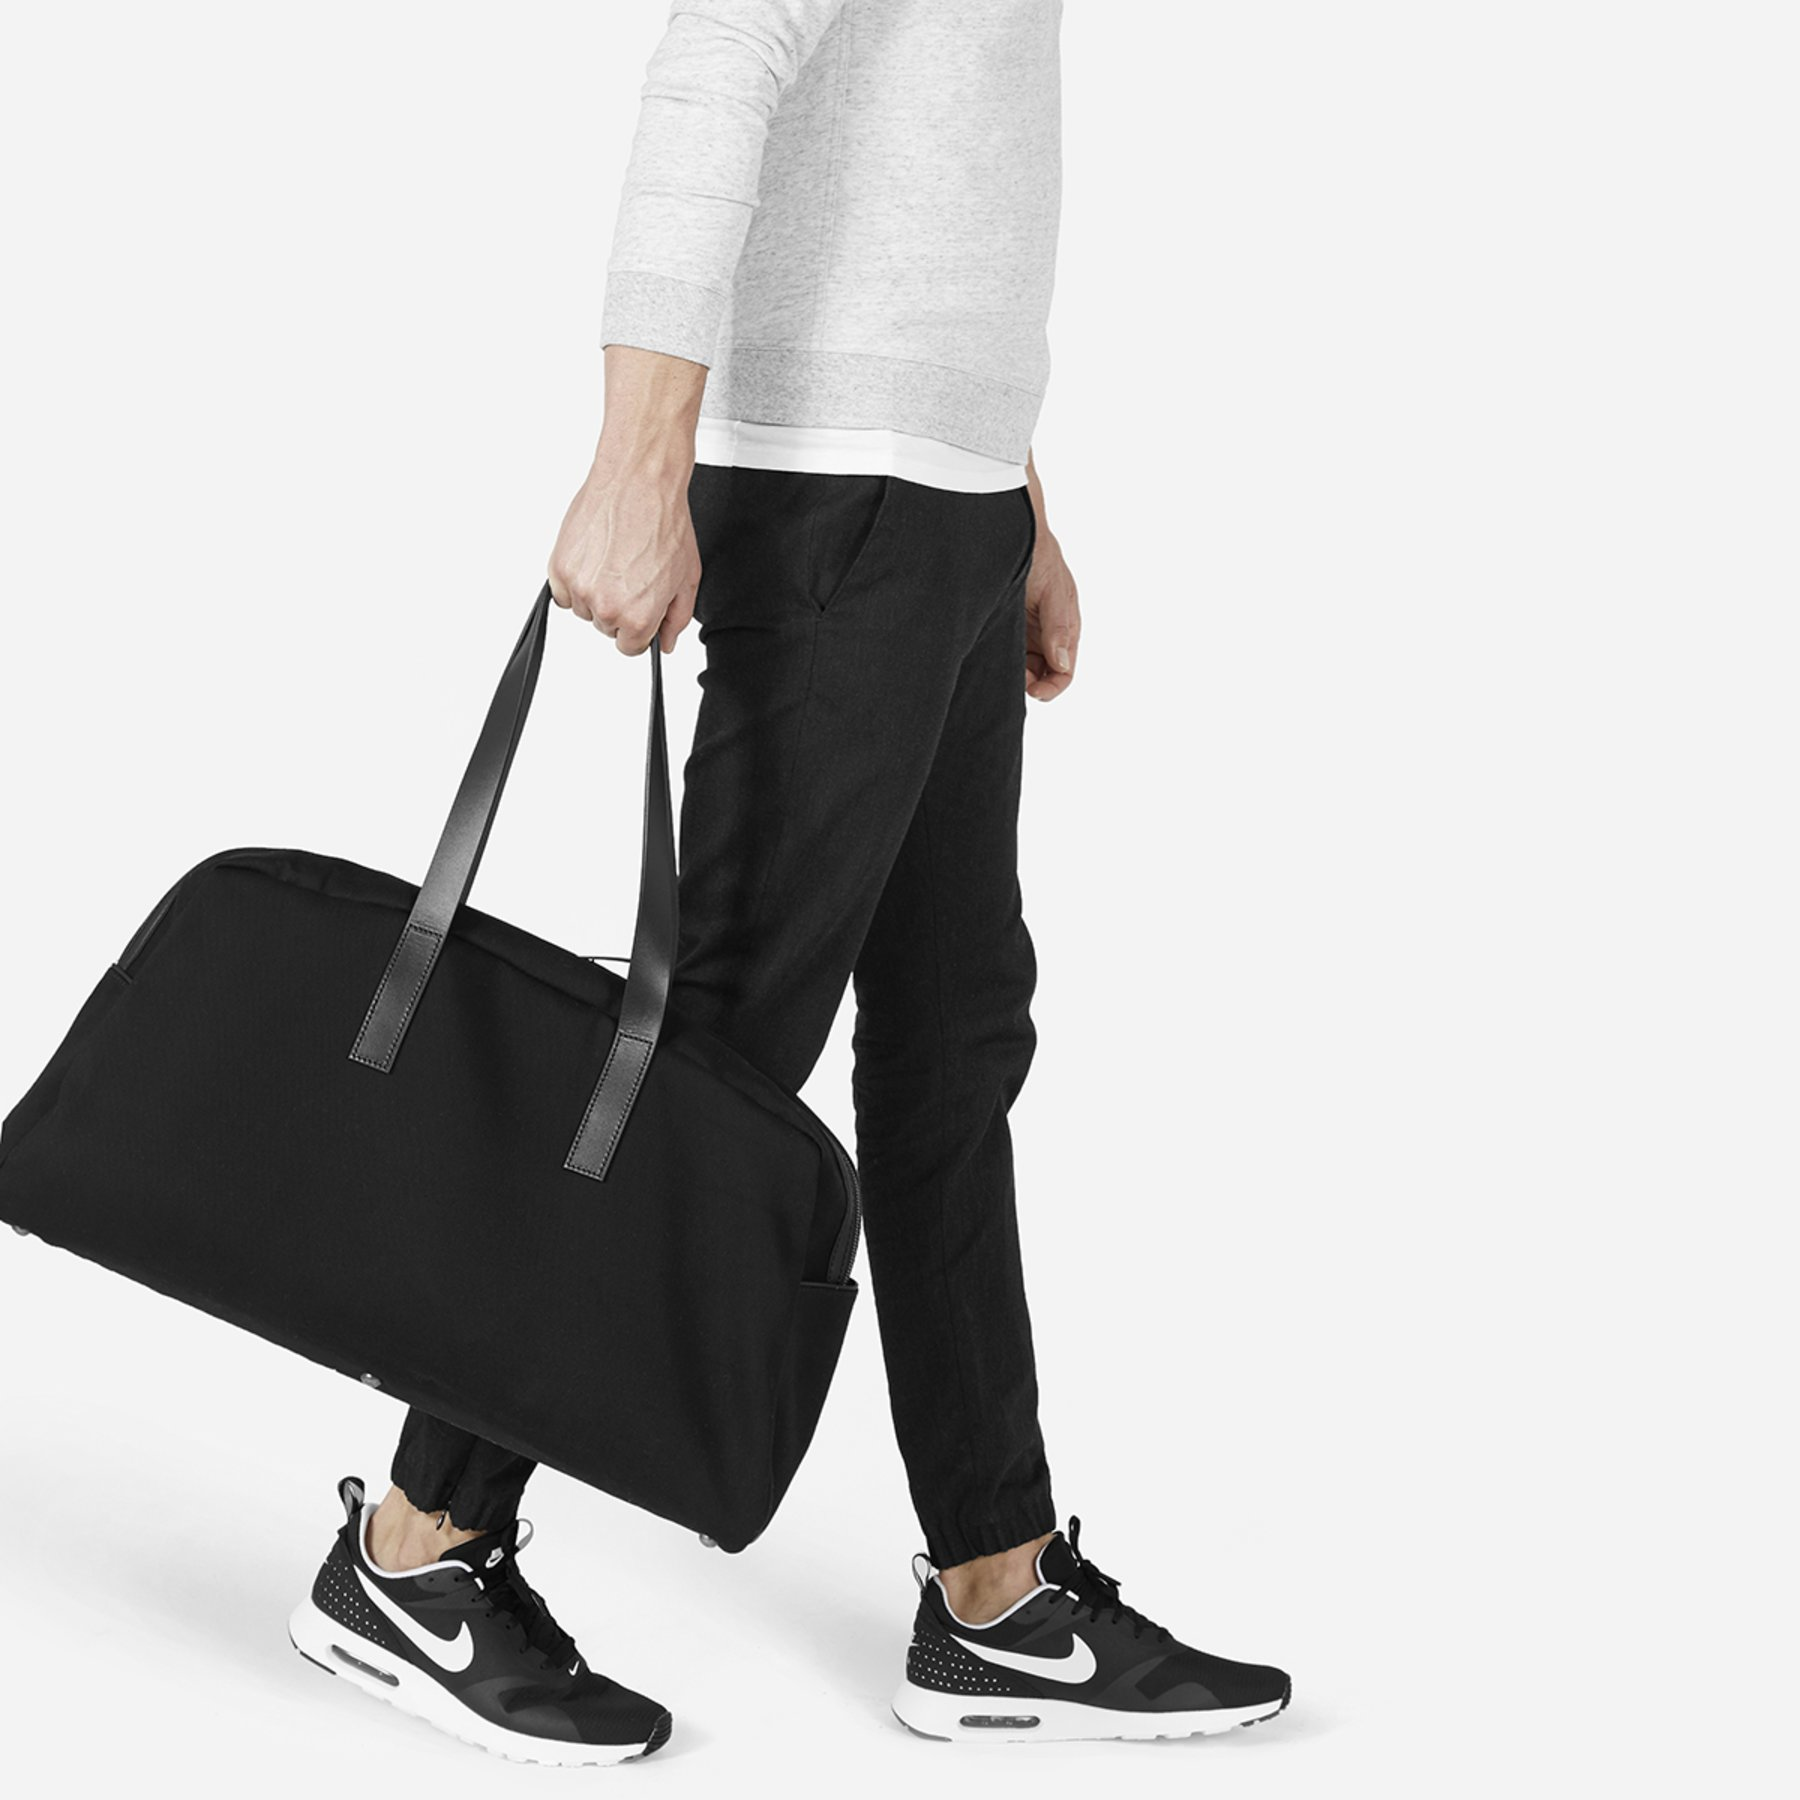 Everlane Twill Weekender Bag categorizes within SEO. I researched, drafted, and published this article on Wordpress (ThriveArchitect). The final project reads a vibrant guide, meticulous detail to grammar, and the keywords requested. Find the published piece  here .